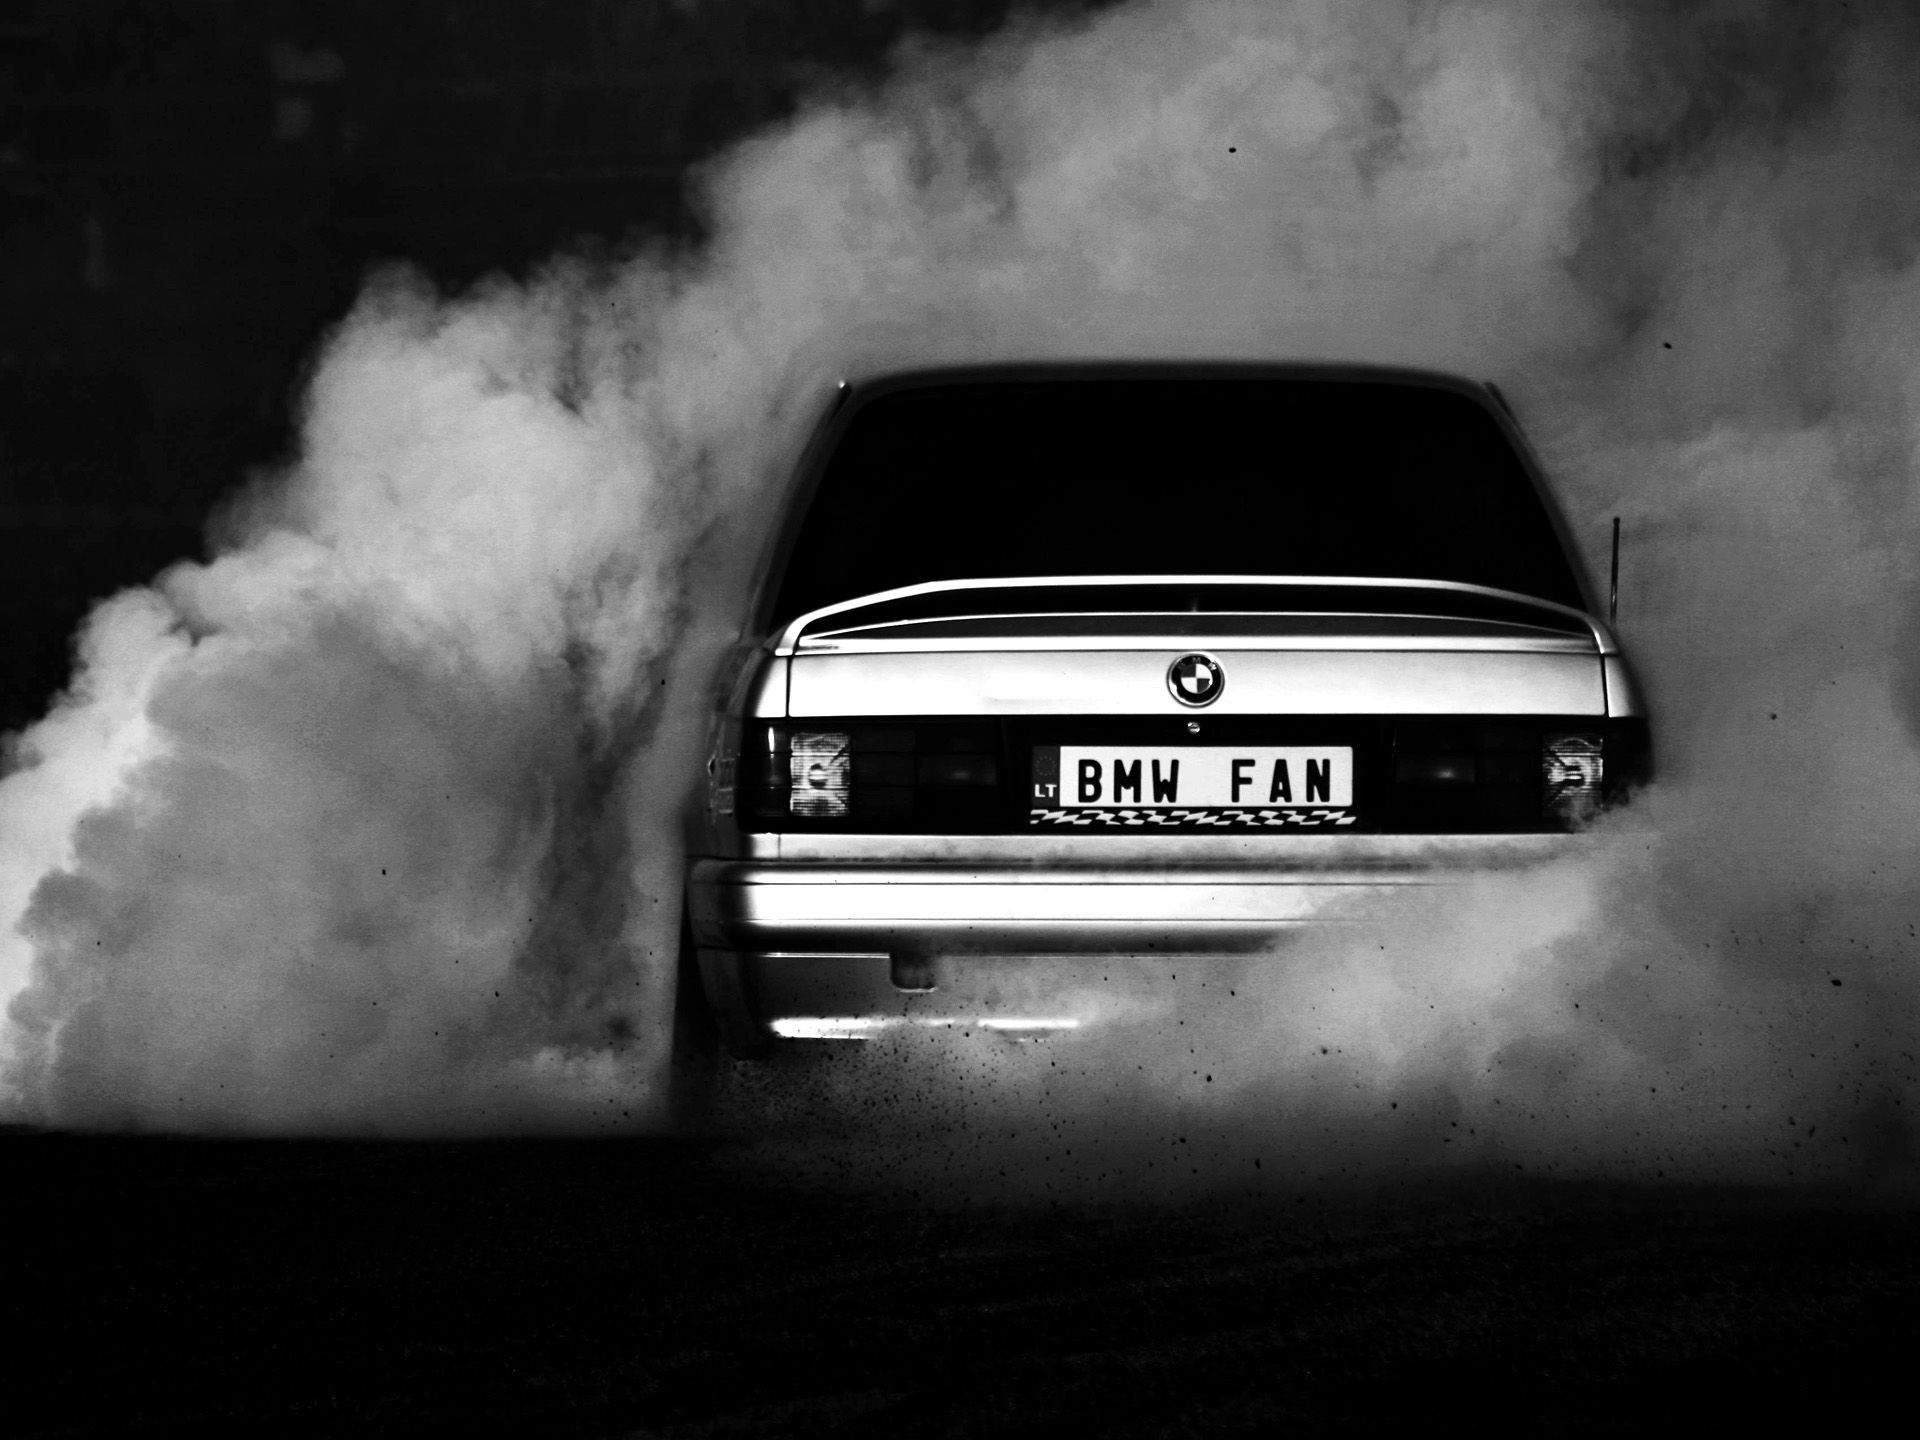 BMW E30 Wallpaper 25    1920x1440  BMW E30 Wallpaper 25 1920x1440 768x576